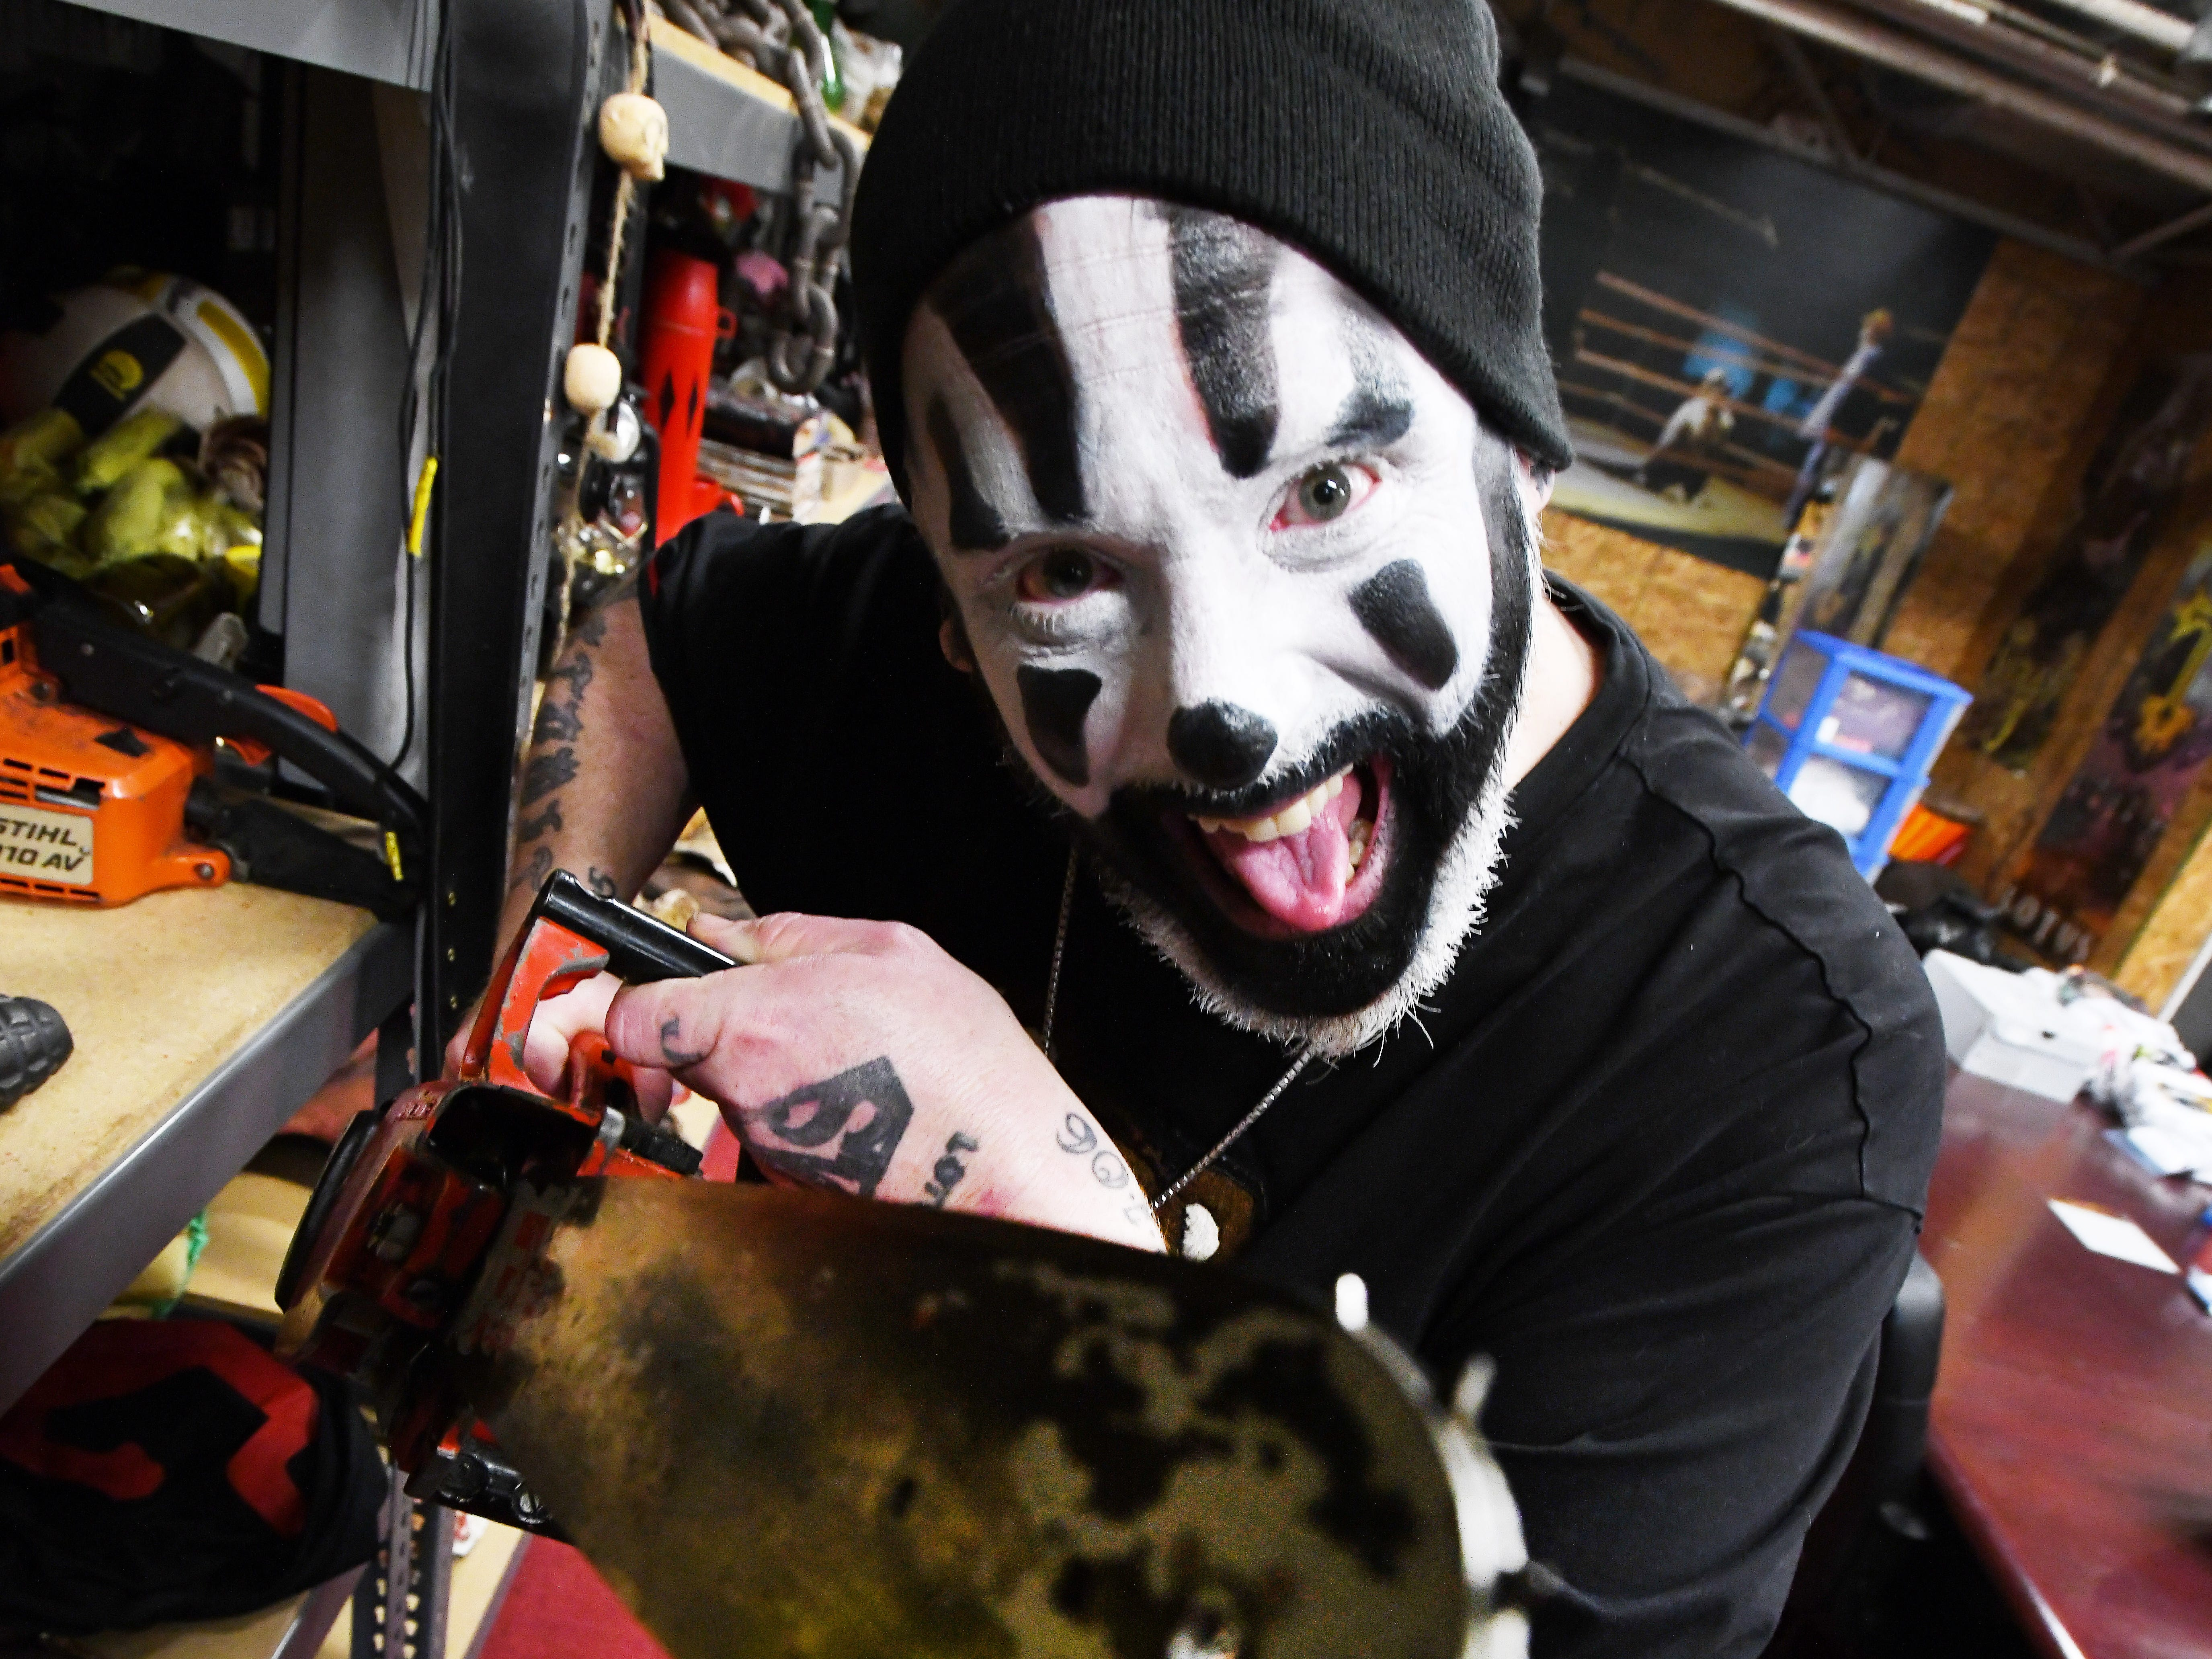 Violent J, aka Joseph Bruce of Insane Clown Posse, shows off costume storage where outfits and various paraphernalia, including a chainsaw prop, are stored from their elaborate shows and tours.